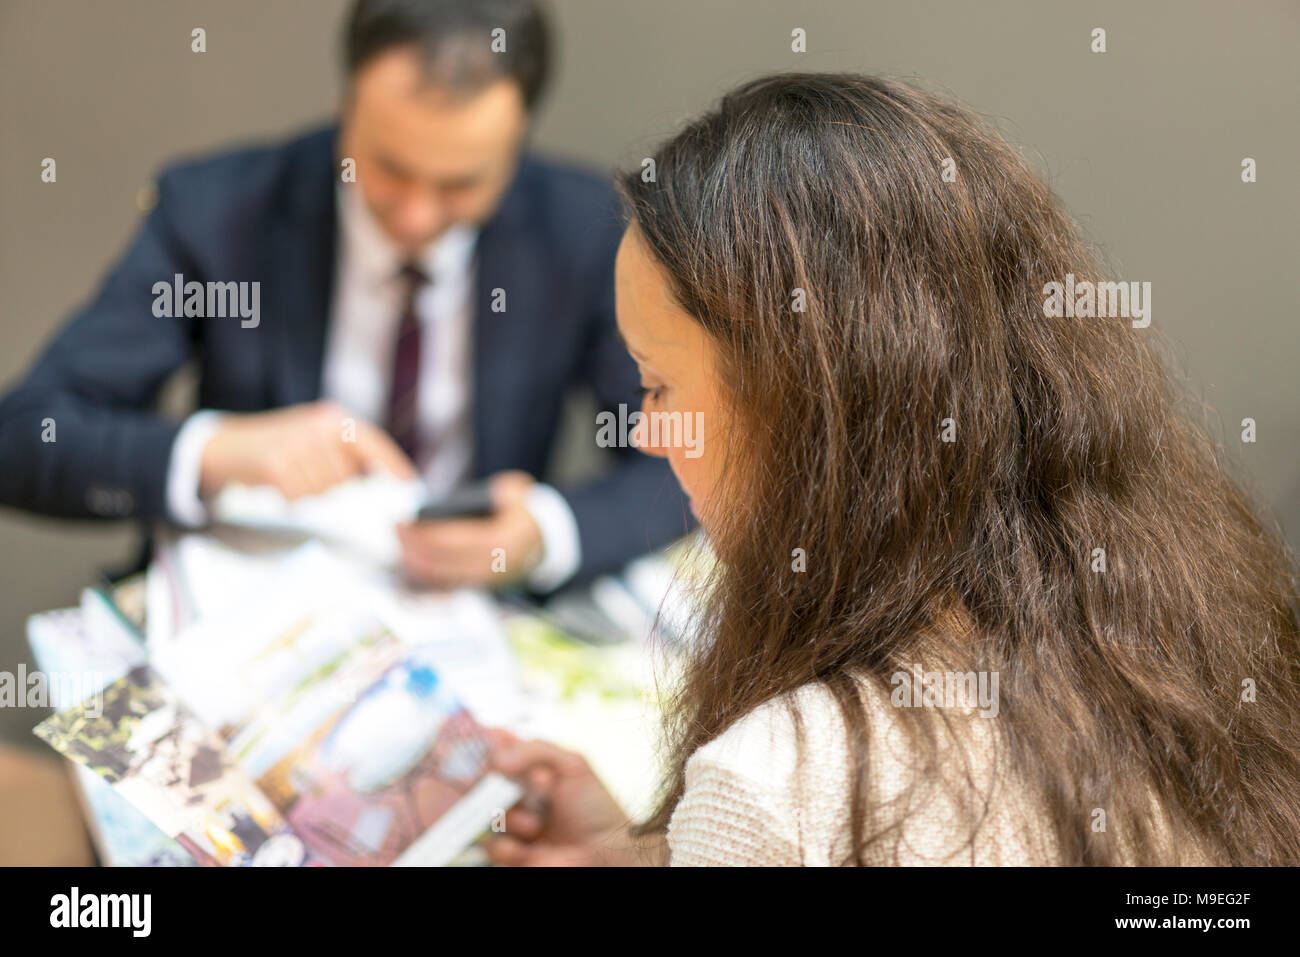 A young woman at a meeting with a manager chooses furniture - Stock Image